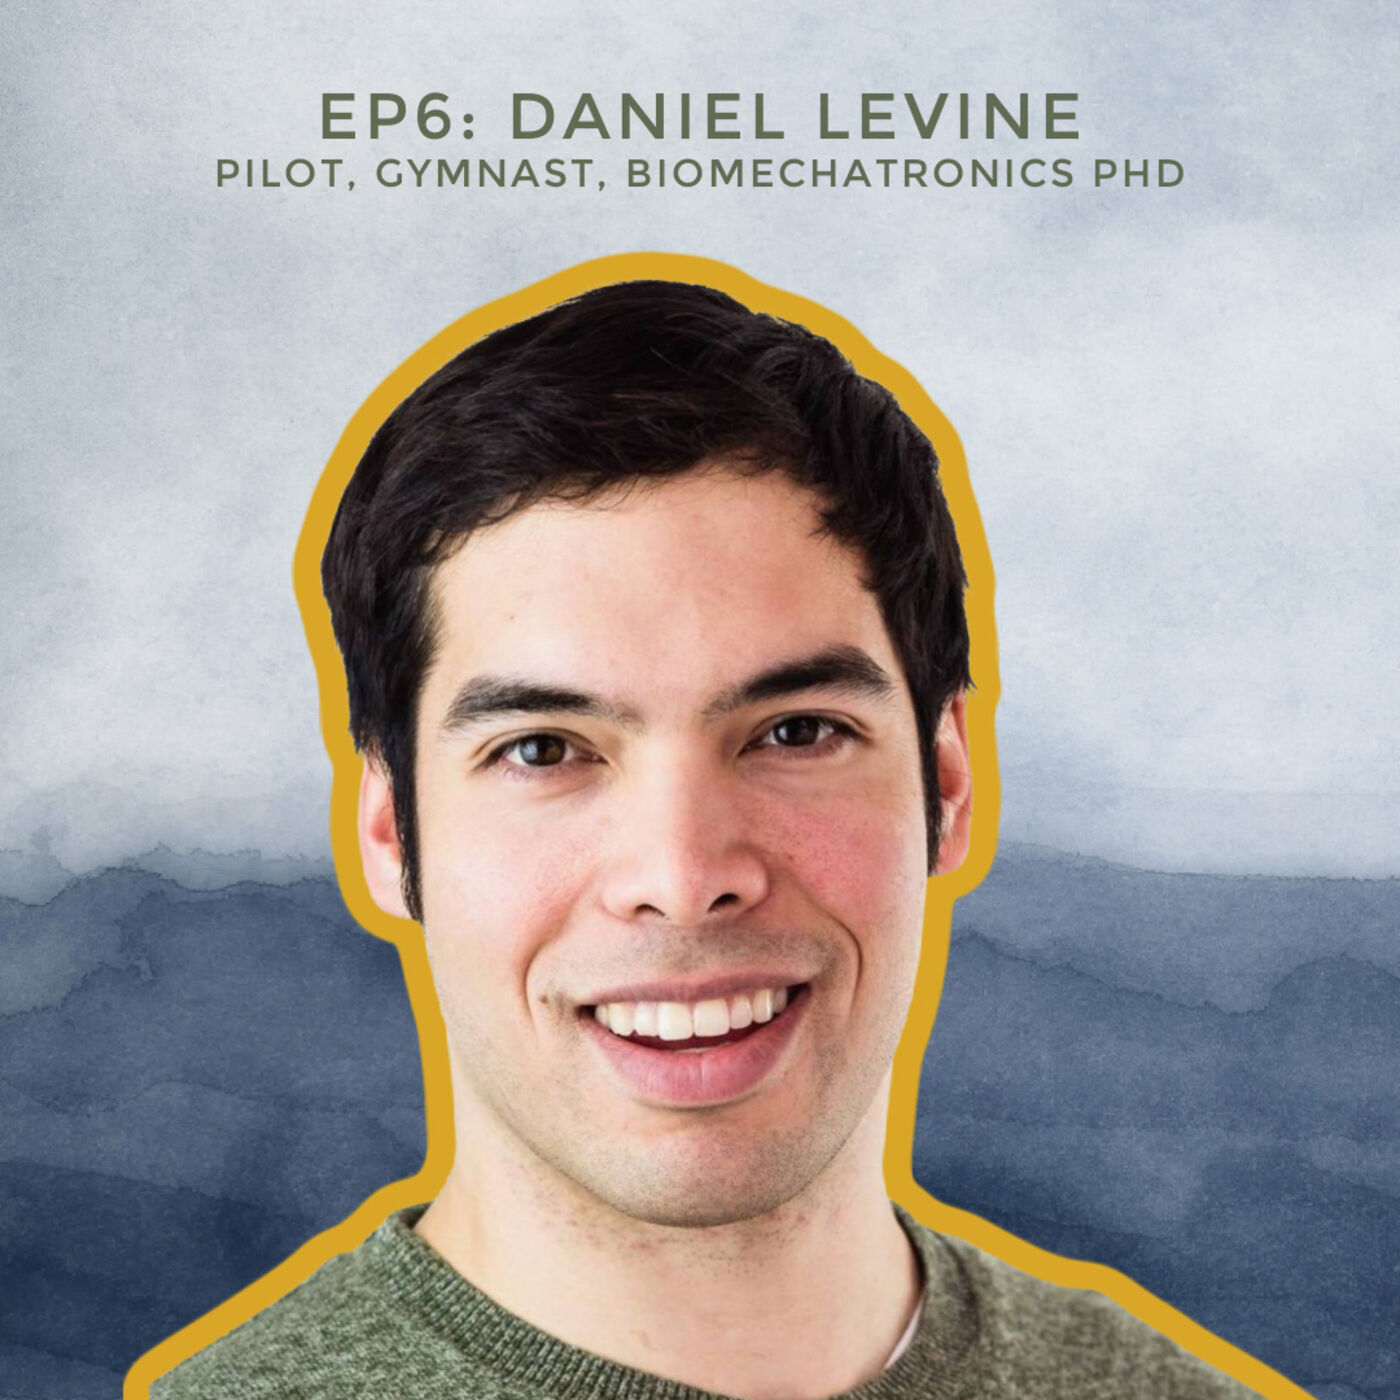 How to Become an Astronaut with Pilot, Gymnast, and Biomechatronics PhD Daniel Levine